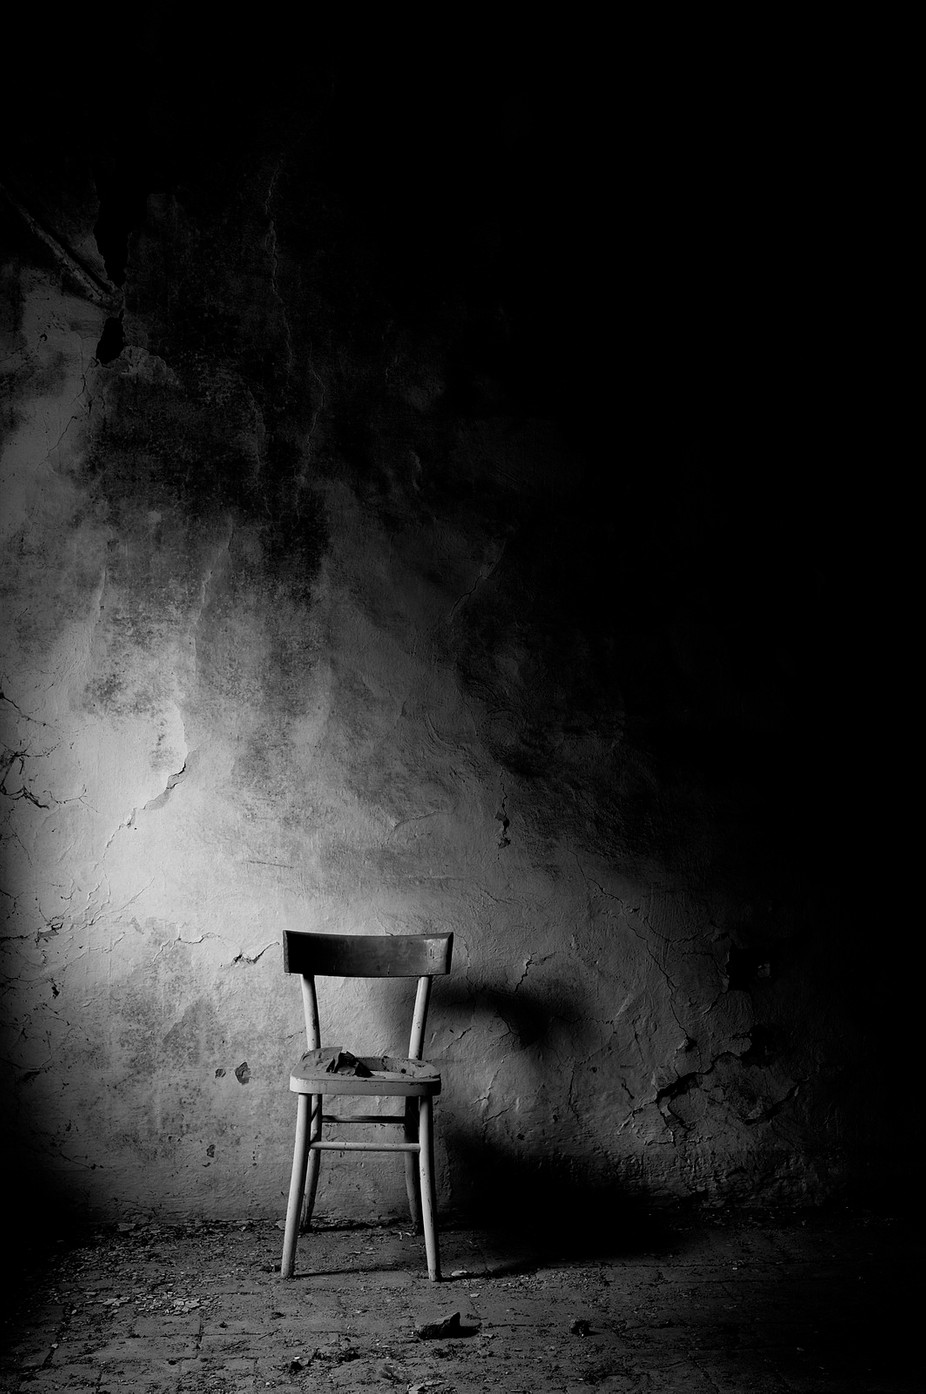 The Chair by dompinson - My Favorite Chair Photo Contest